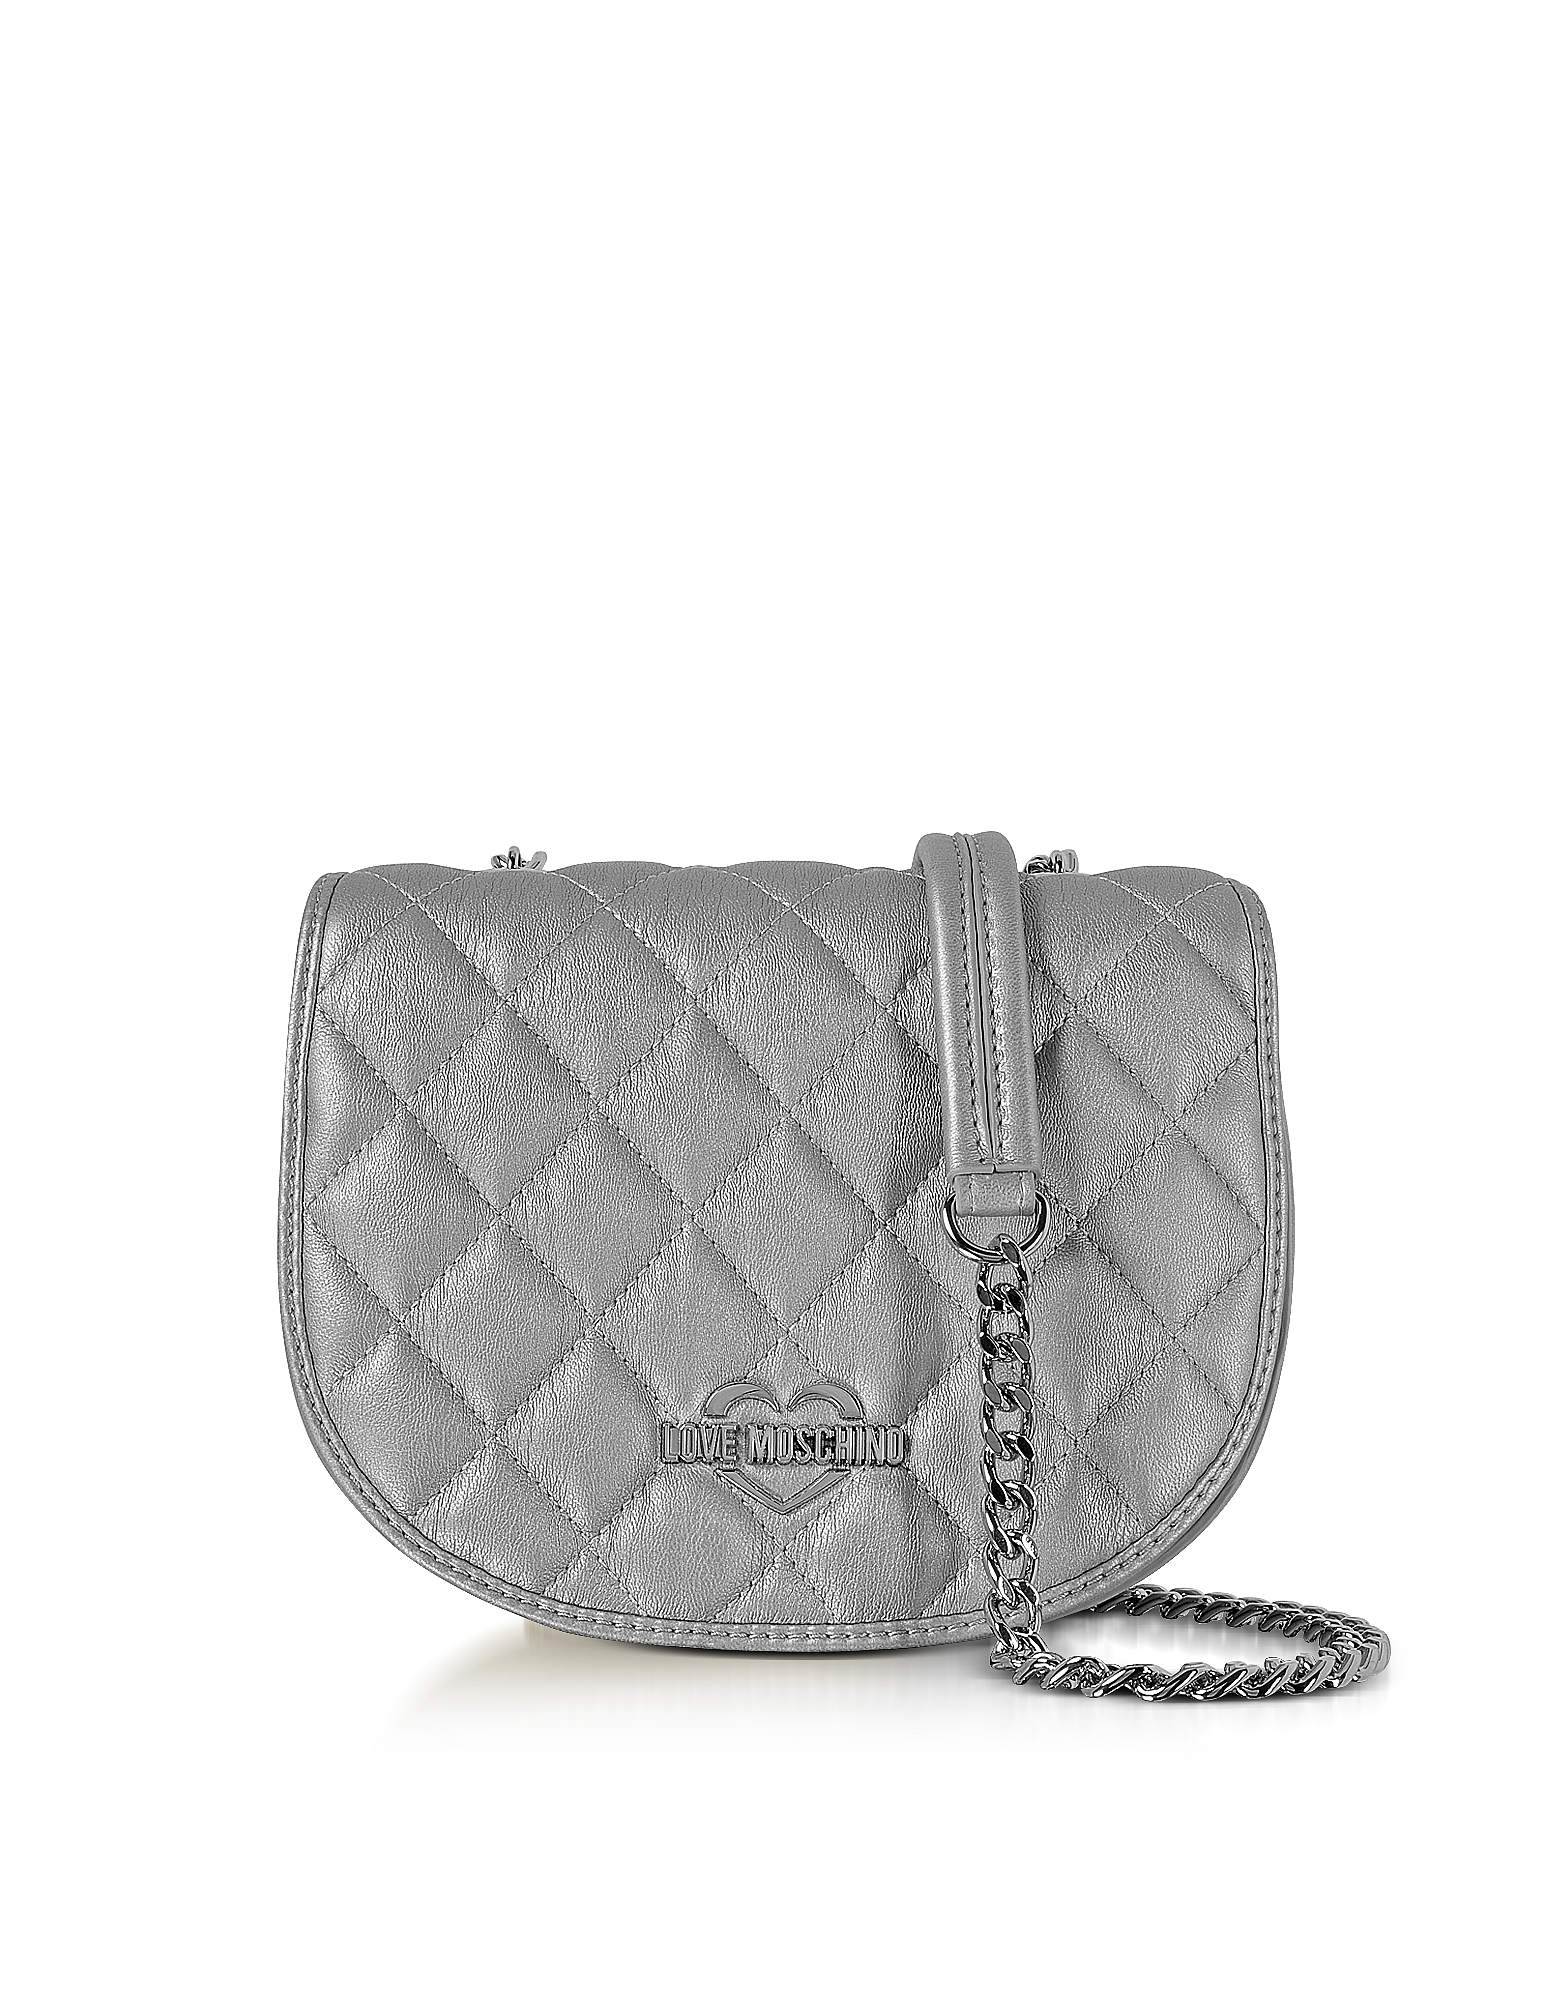 Love Moschino Handbags, Silver Metallic Quilted Eco-Leather Crossbody Bag